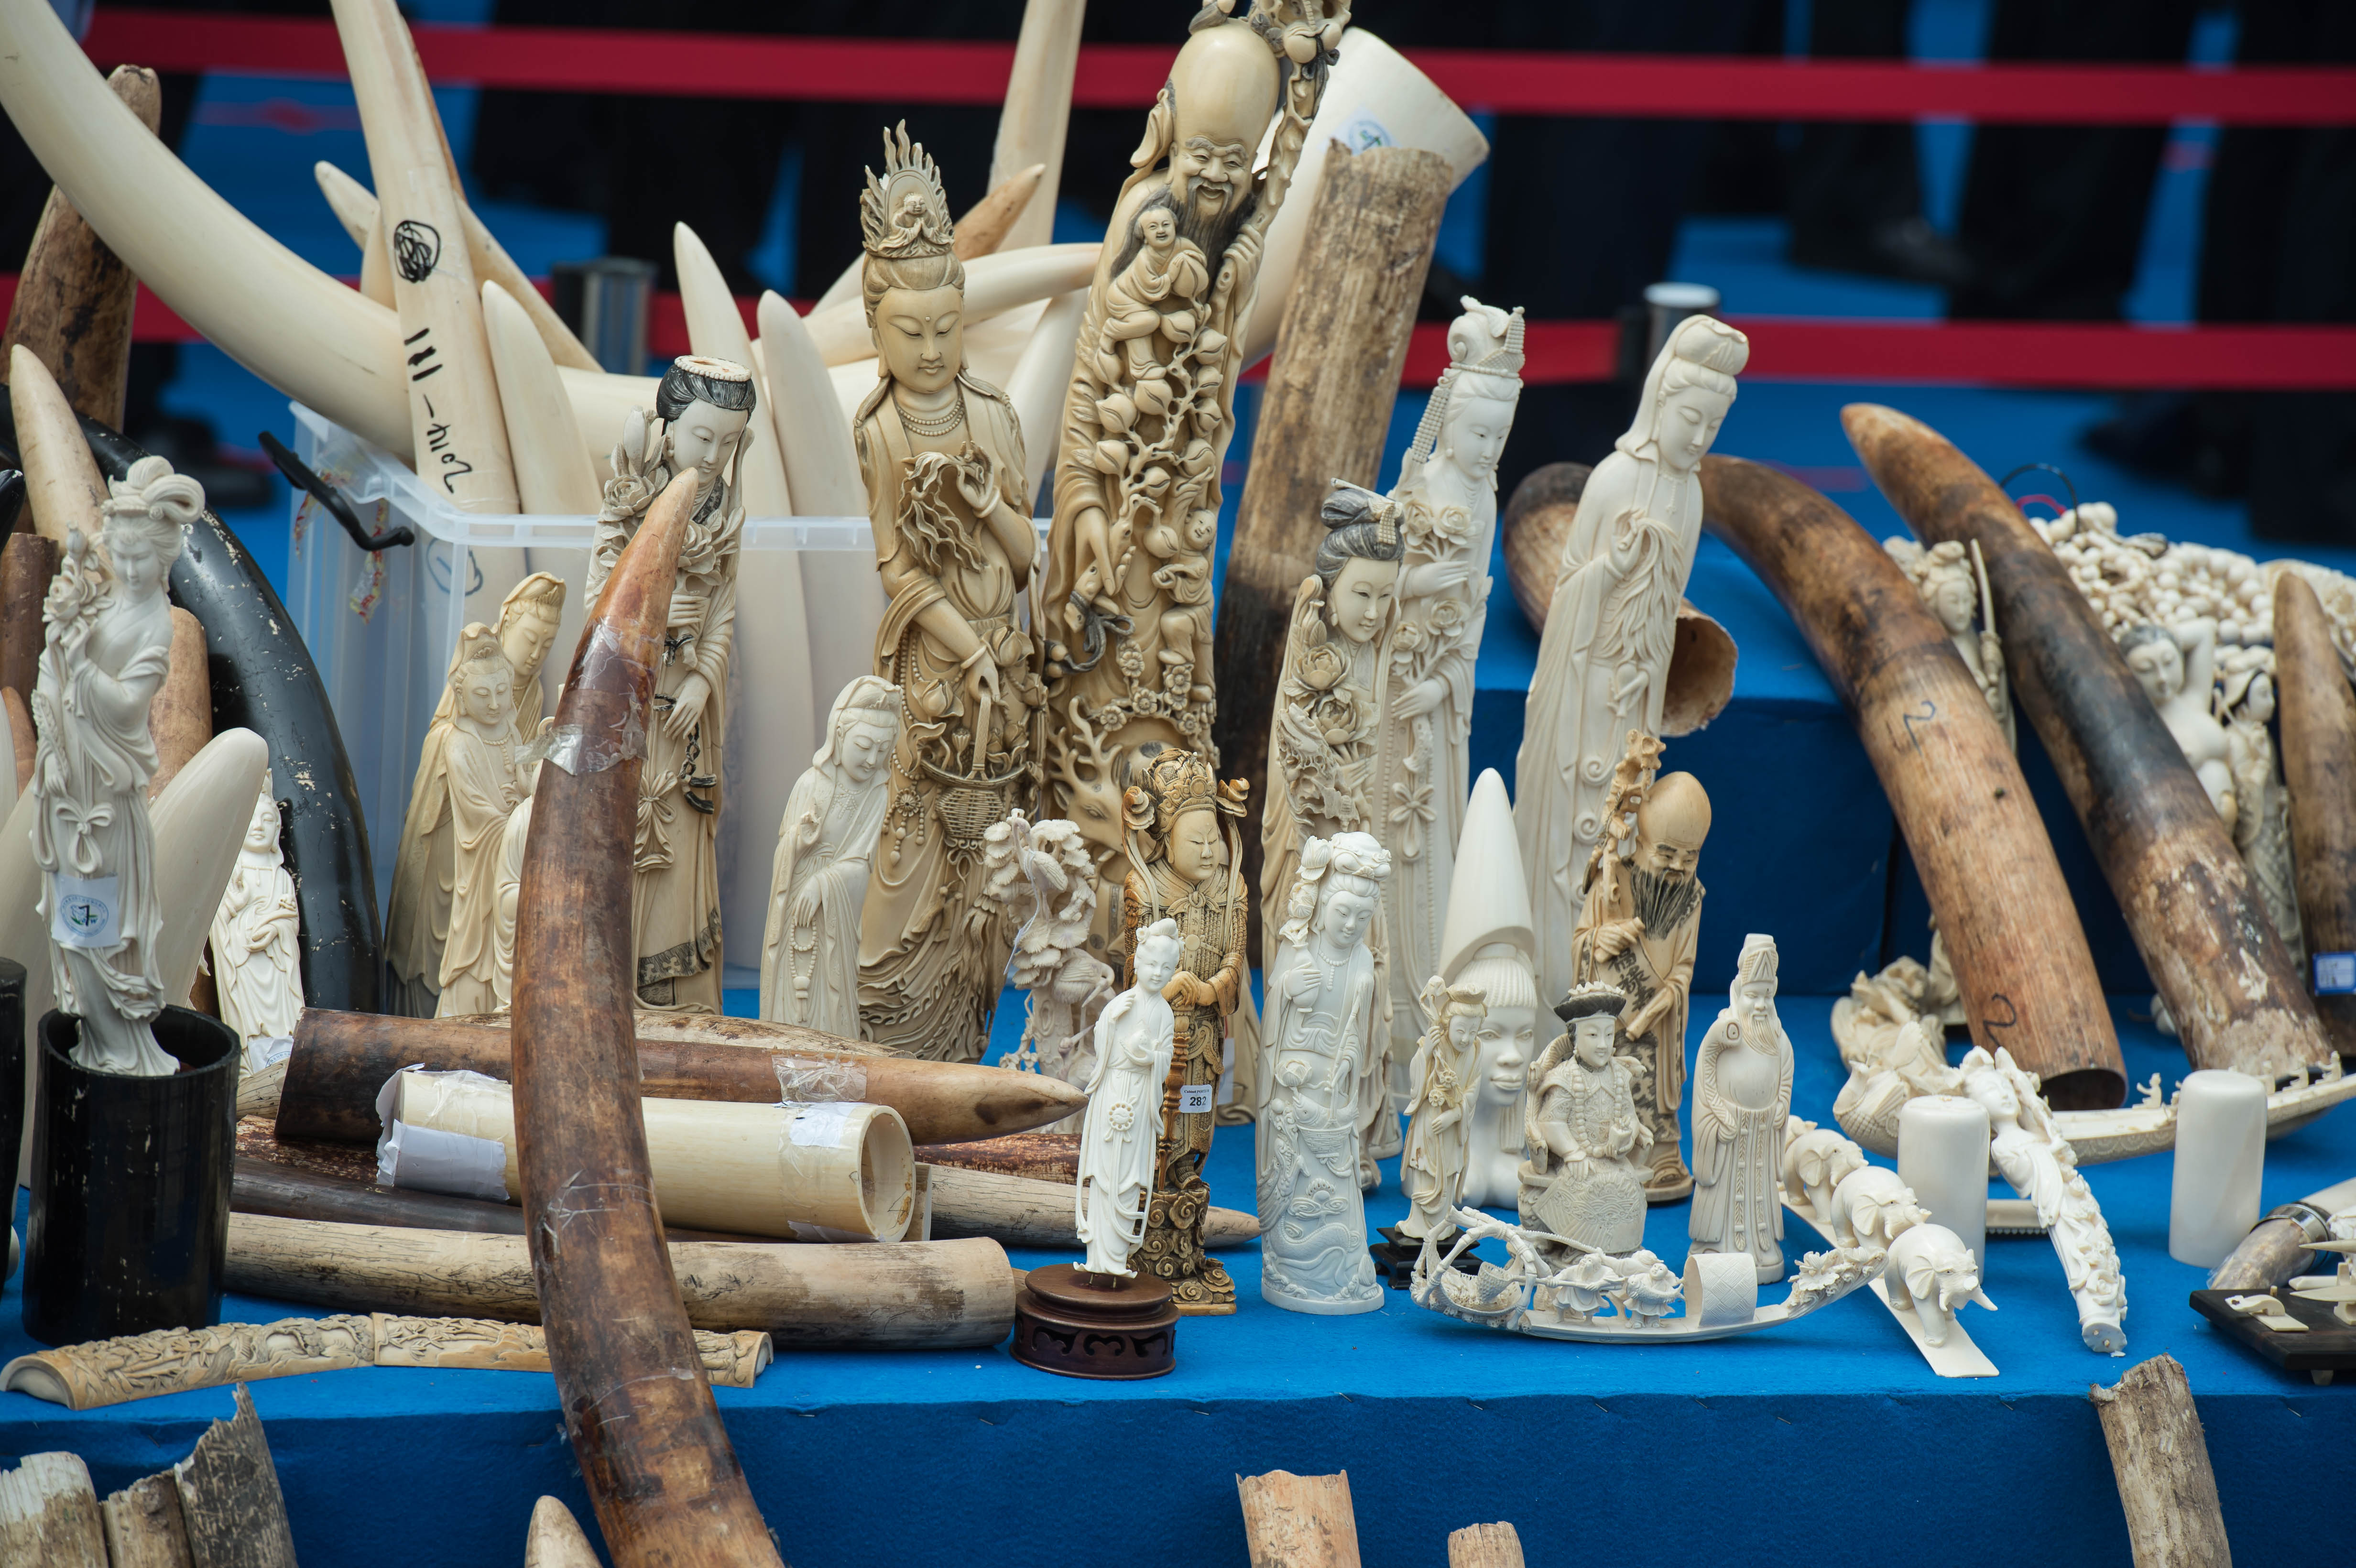 Staff of the State Forest Administration and police of General Administration of Customs destroy about 662 kilograms of illegal ivory and ivory products at Beijing Wildlife Rescue and Rehabilitation Center on May 29, 2015 in Beijing, China.